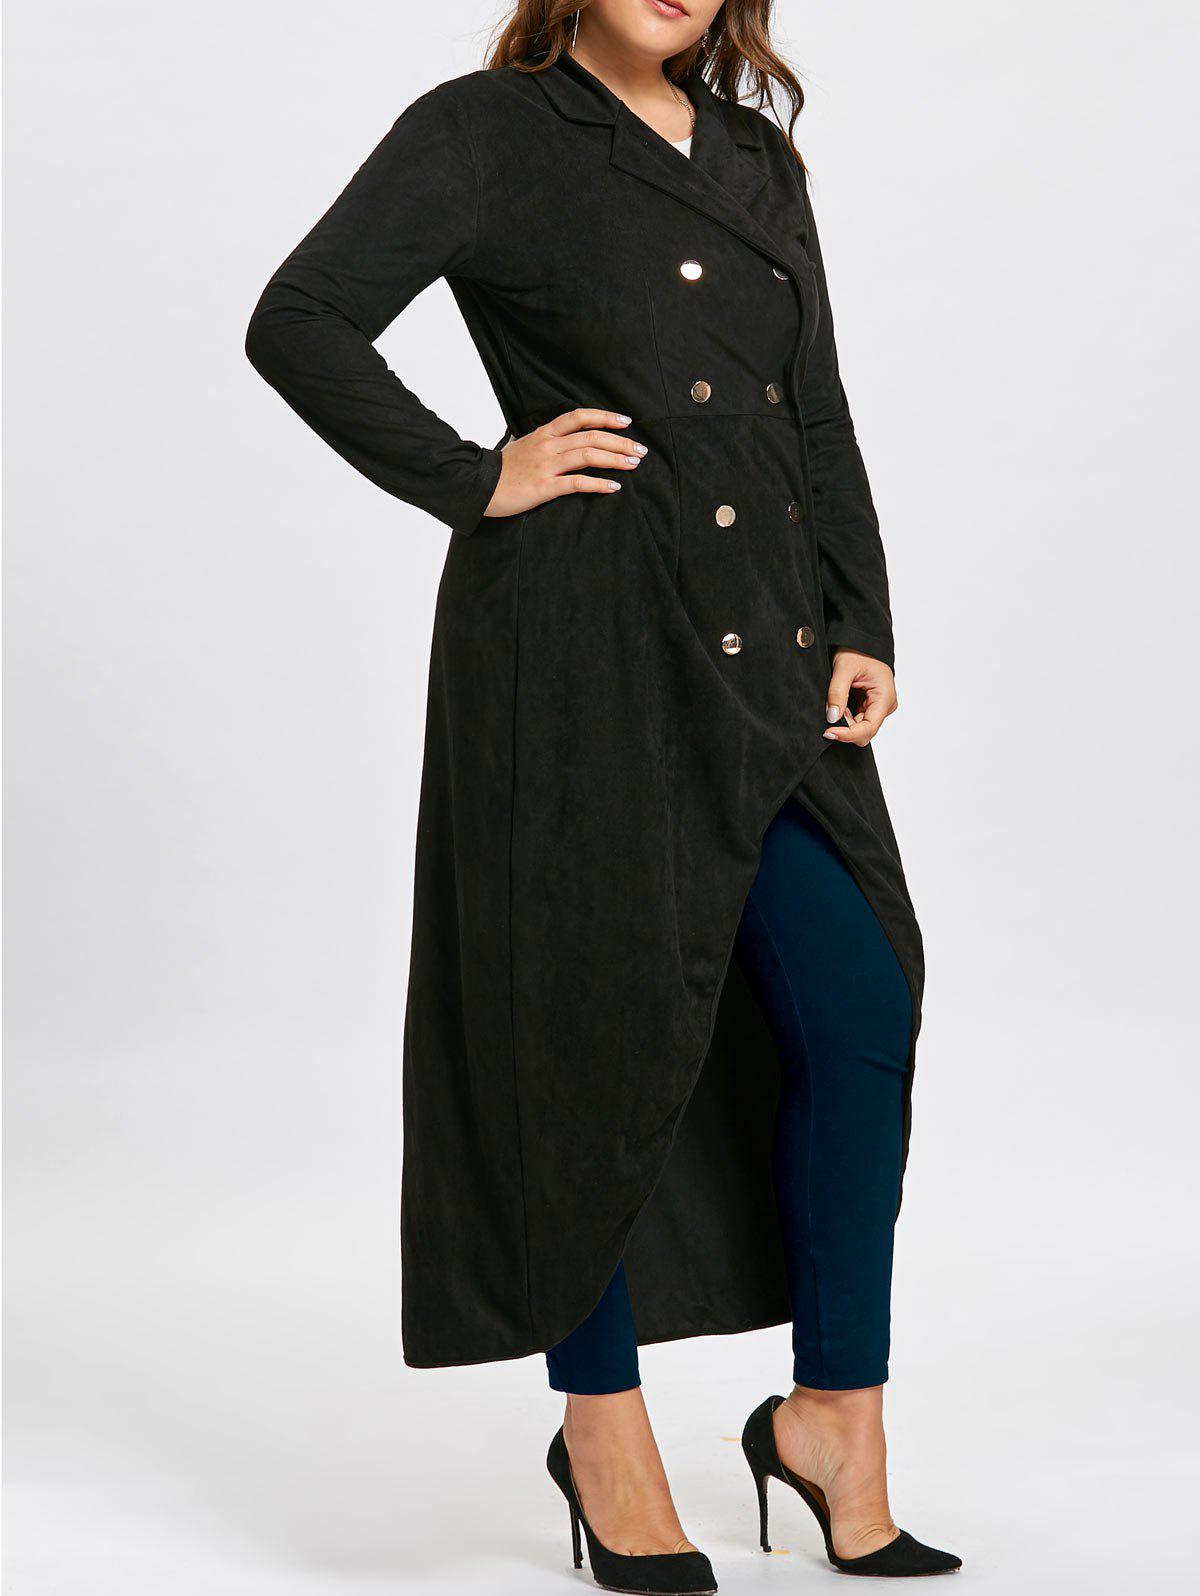 Plus Size Double Breast Long High Low CoatWOMEN<br><br>Size: 5XL; Color: BLACK; Clothes Type: Trench; Material: Polyester; Type: Asymmetric Length; Shirt Length: Long; Sleeve Length: Full; Collar: Lapel; Closure Type: Double Breasted; Pattern Type: Solid; Embellishment: Button,Vintage; Style: Fashion; Season: Fall,Winter; Weight: 1.0500kg; Package Contents: 1 x Coat;